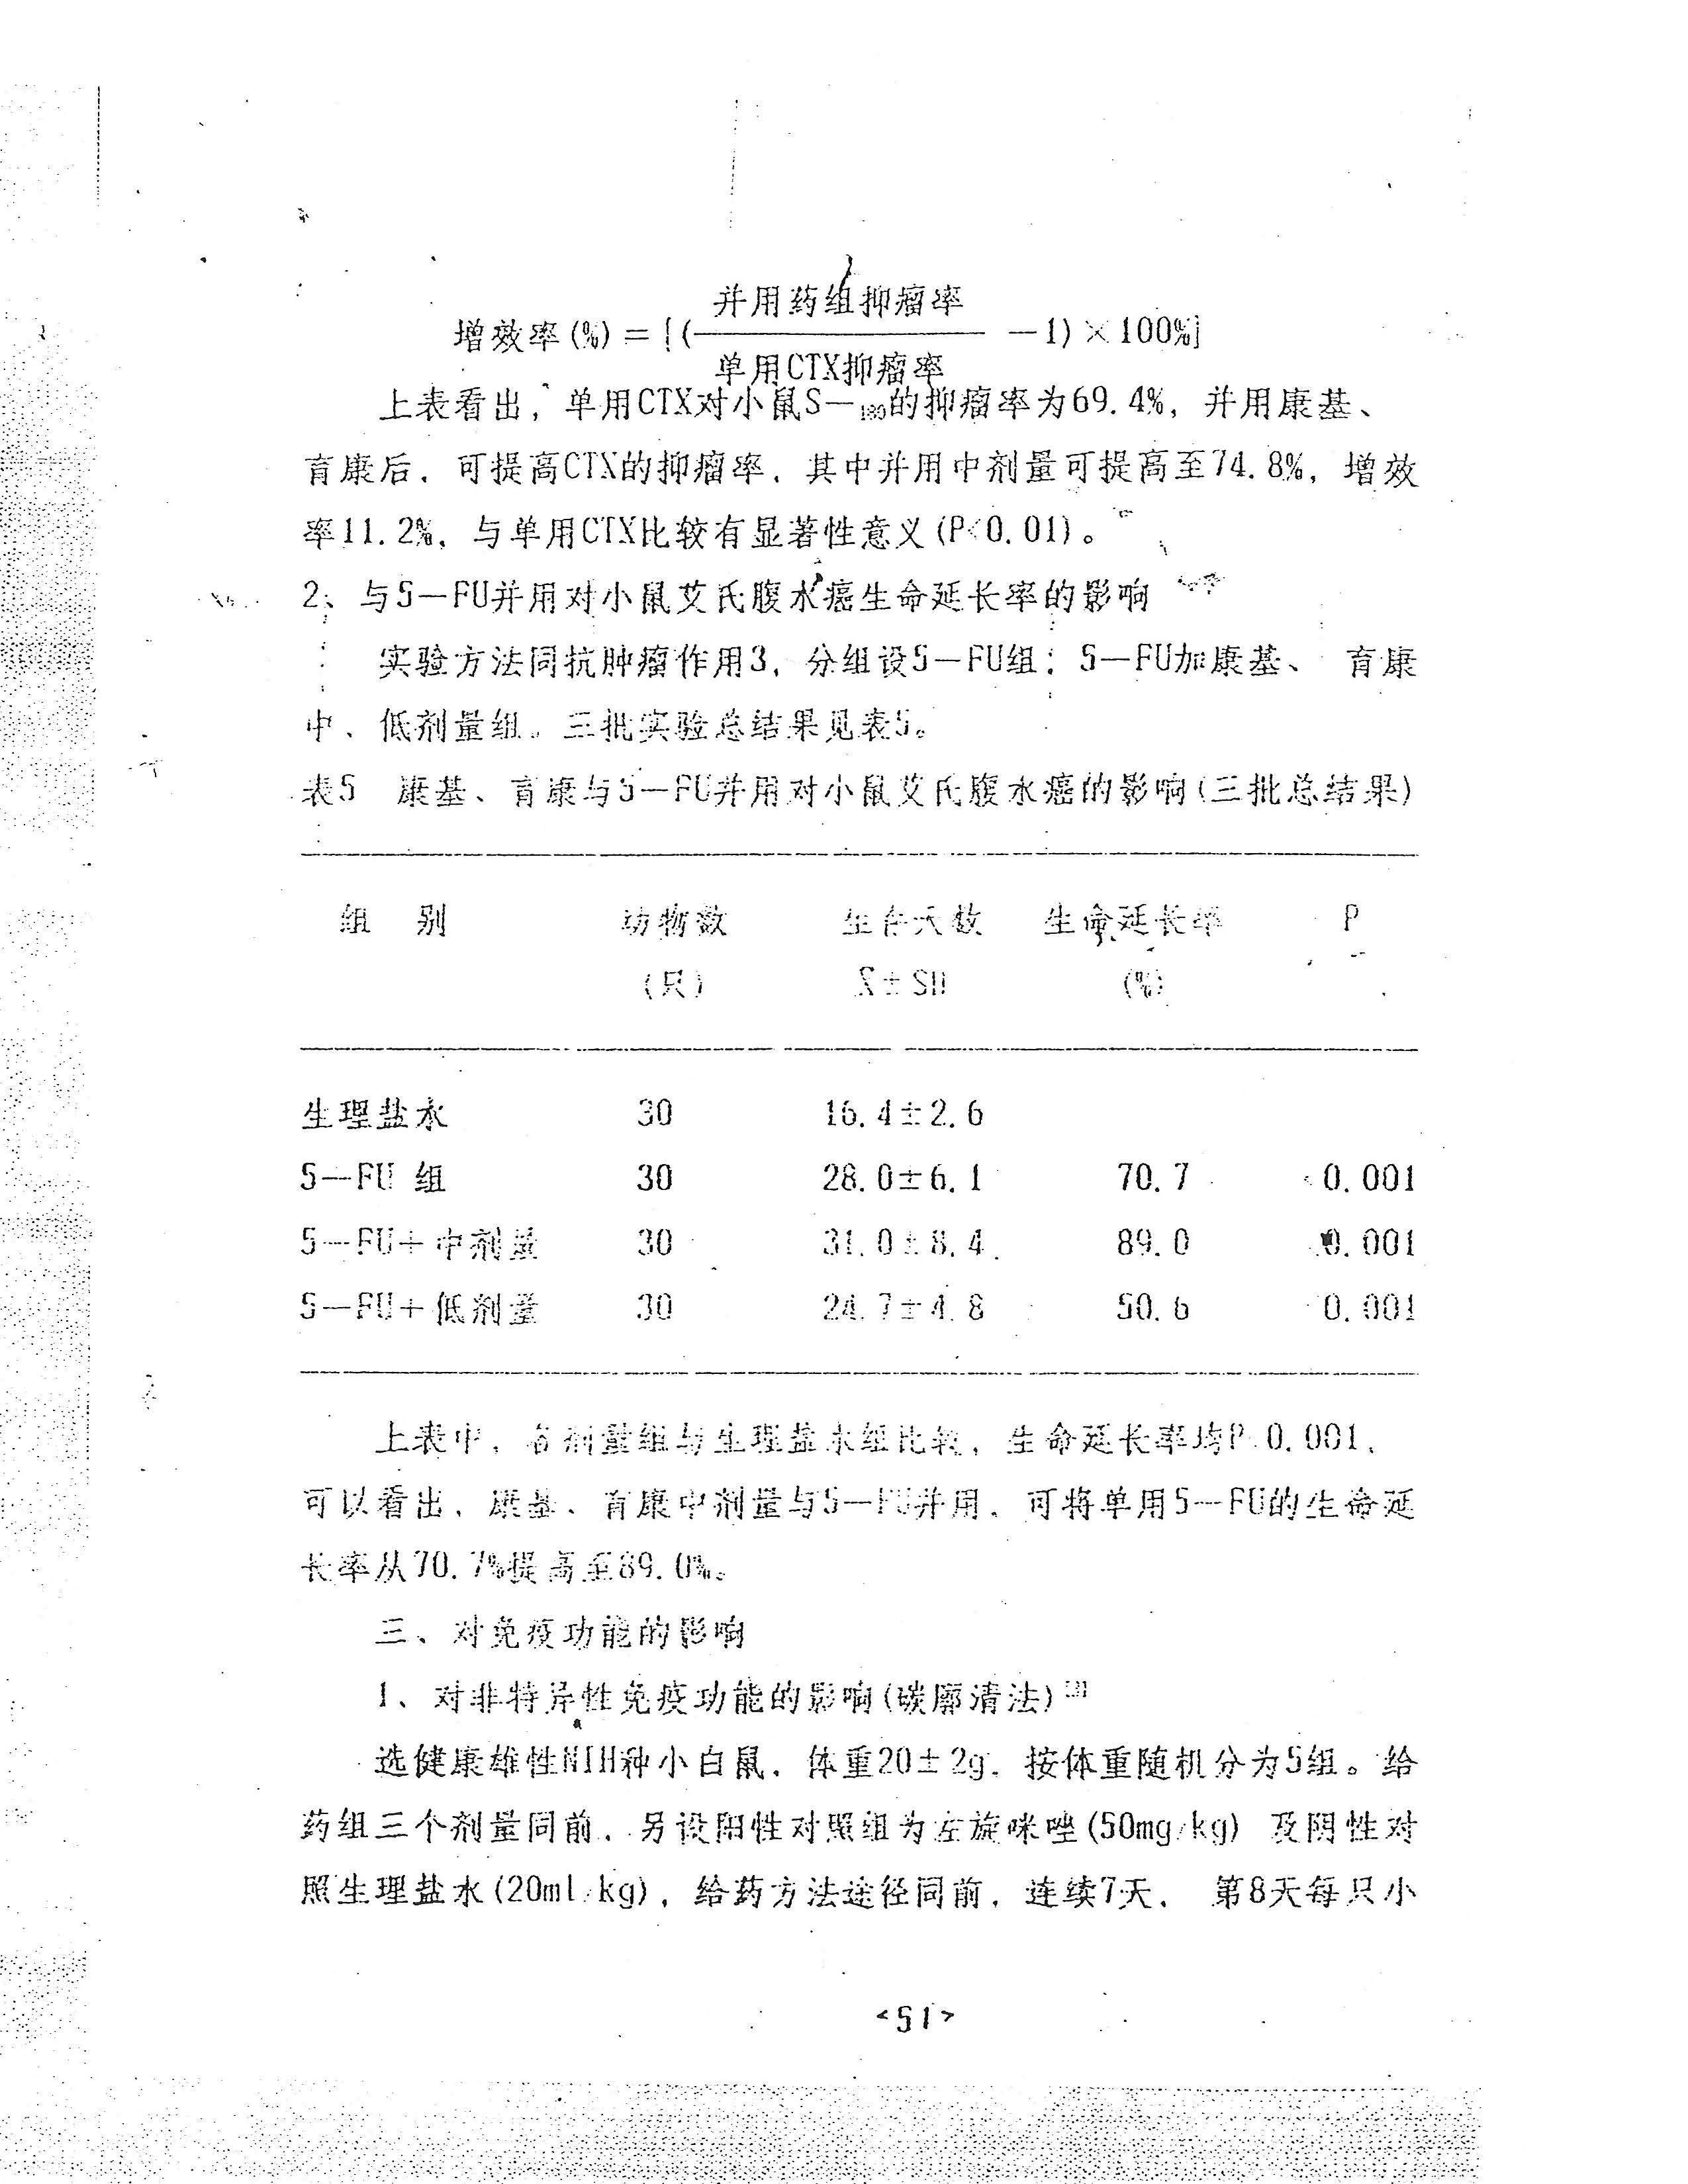 clinical_Page_53